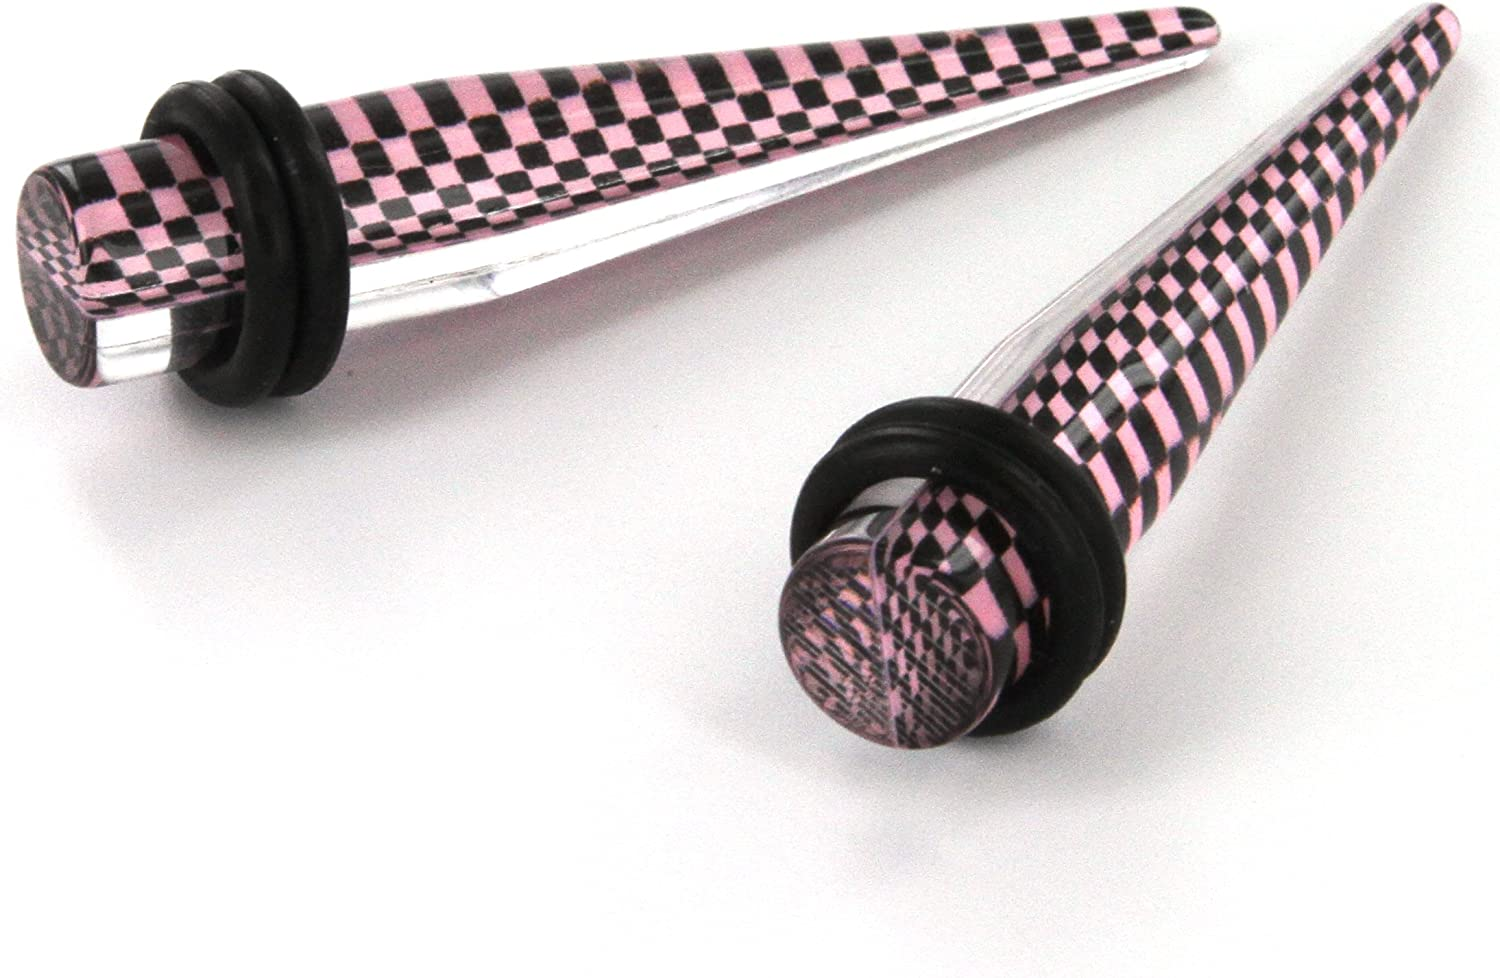 2G Red - Sold as a Pair 6mm or Pink Black Checker Print Clear Tapers in White